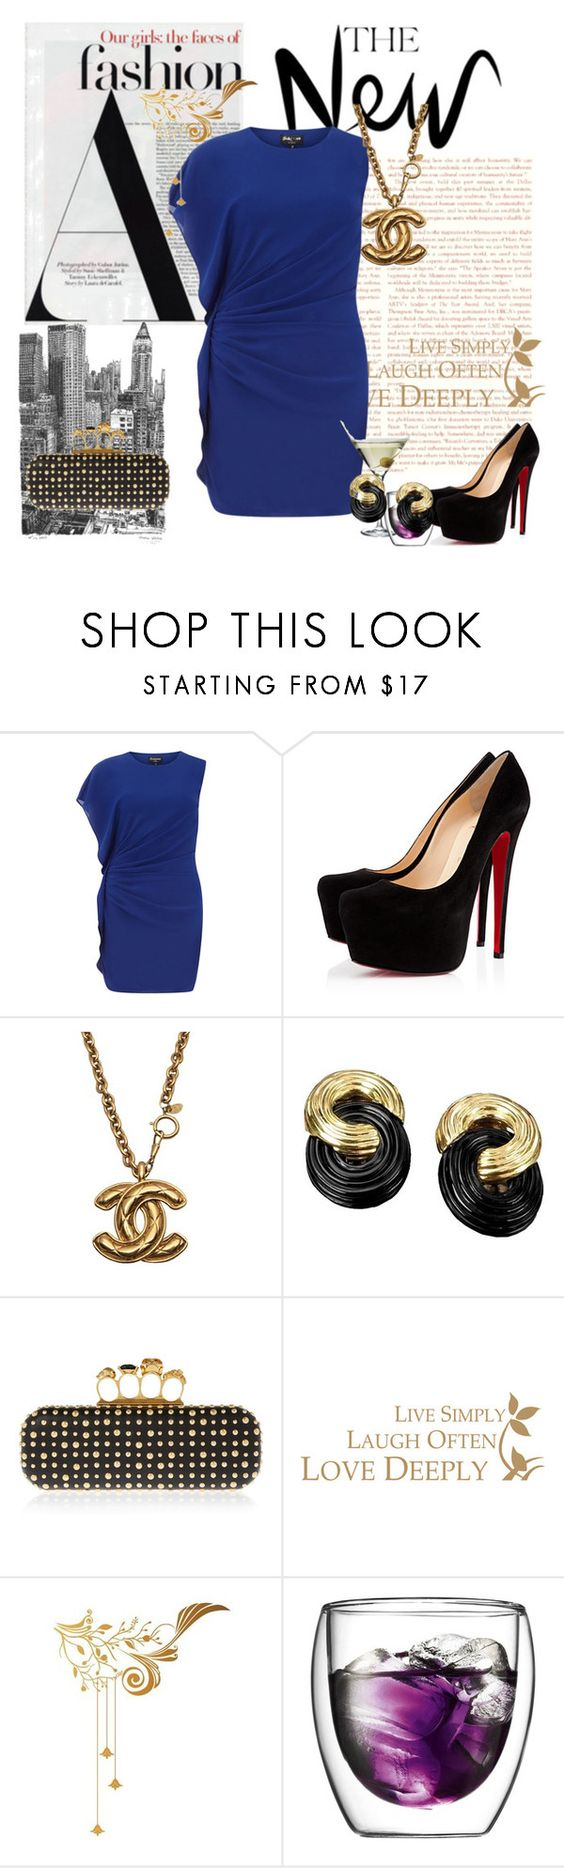 """Cocktail Party Chic"" by chap6020 ❤ liked on Polyvore featuring moda, Dorothy Perkins, Christian Louboutin, Chanel, Alexander McQueen, Industrie, Savant, Surface Collective, Eva Solo e Bodum"